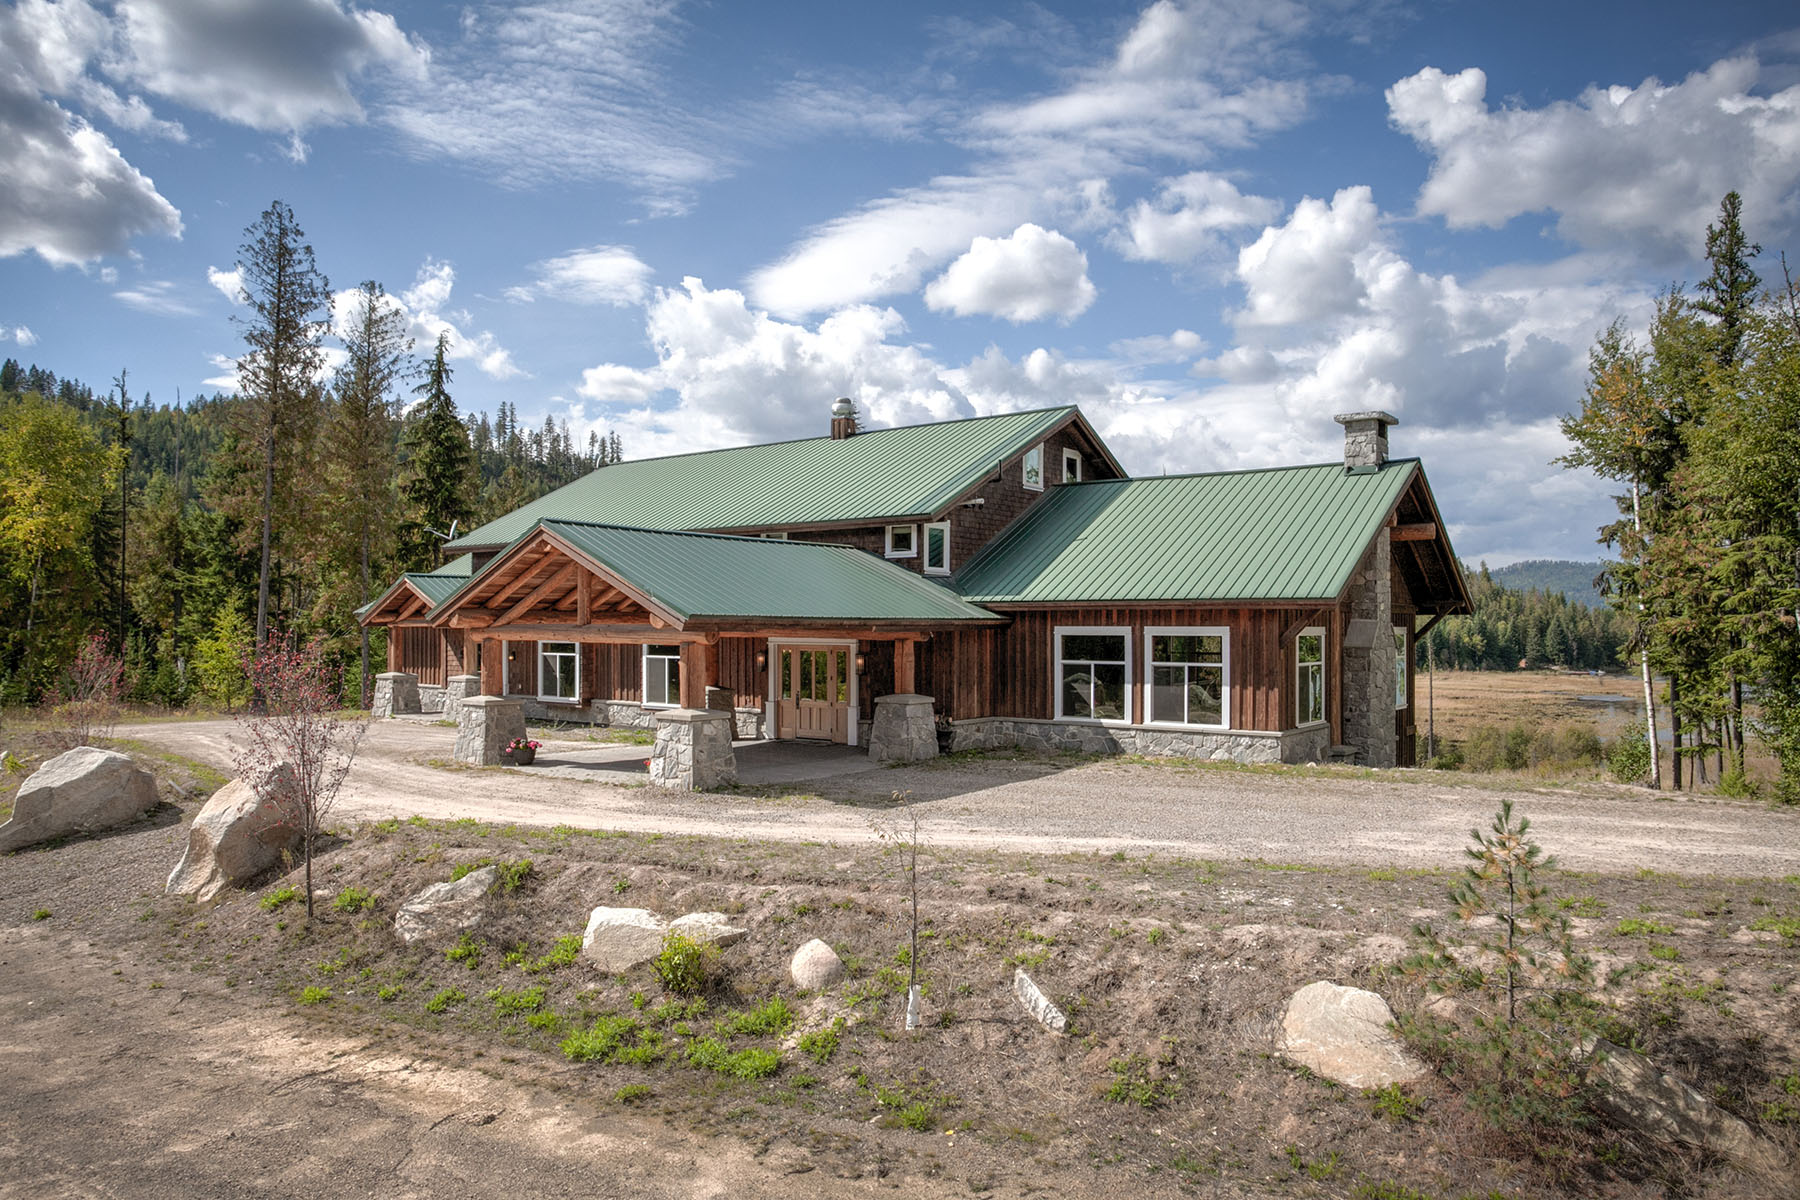 Single Family Home for Sale at Magnificent Lodge Home Estate 1834 Lost Creek Rd. Coolin, Idaho 83821 United States